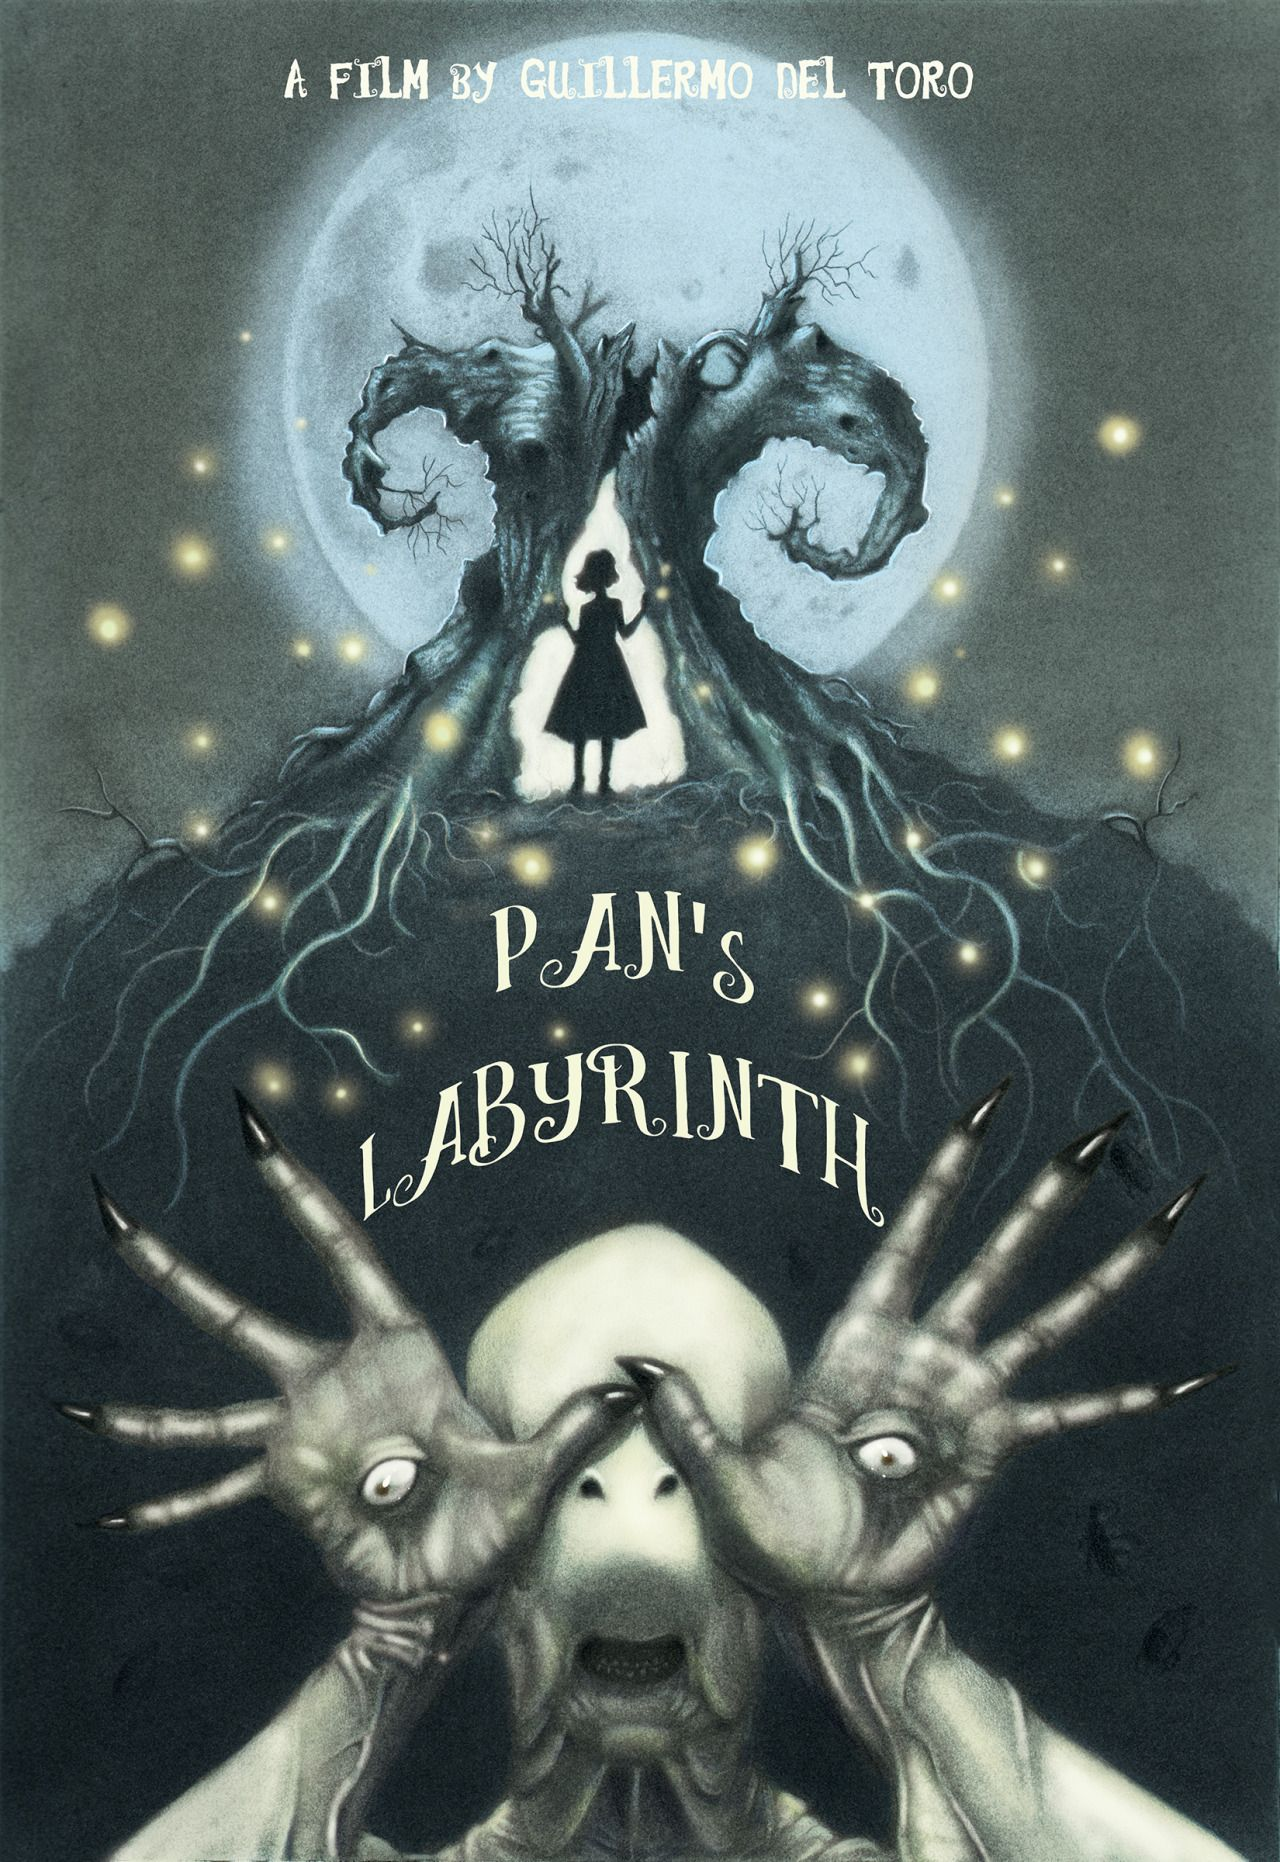 Pan S Labyrinth Poster Tumblr Labyrinth Poster Labyrinth Art Labyrinth